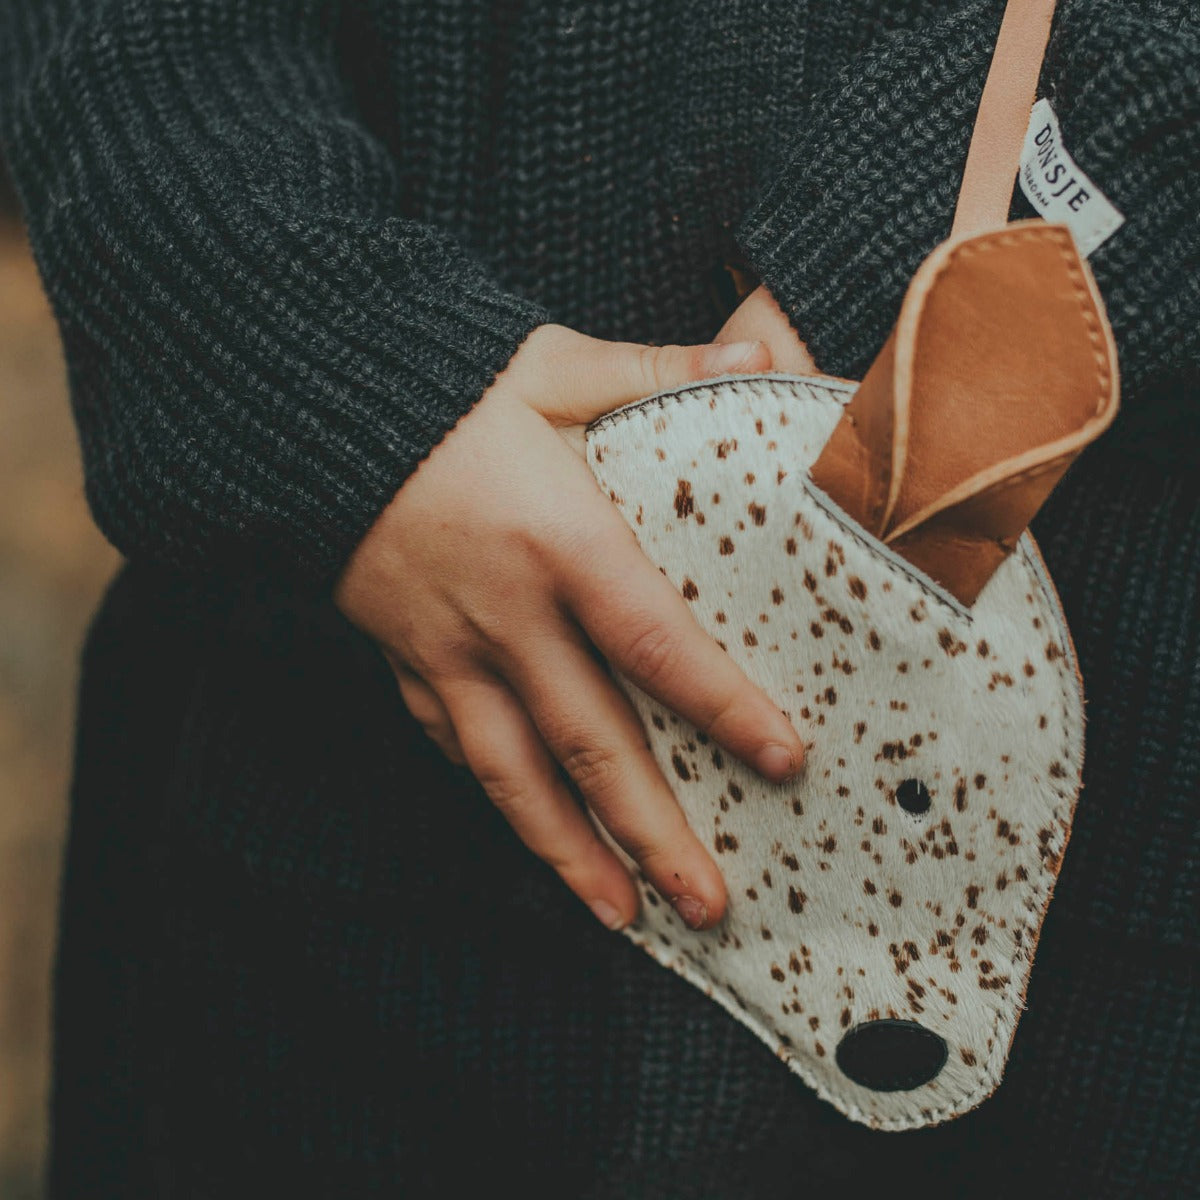 US stockist of Donsje's Bambi Britta Exclusive Purse. Handmade from premium leather with an adjustable strap and zip compartment.